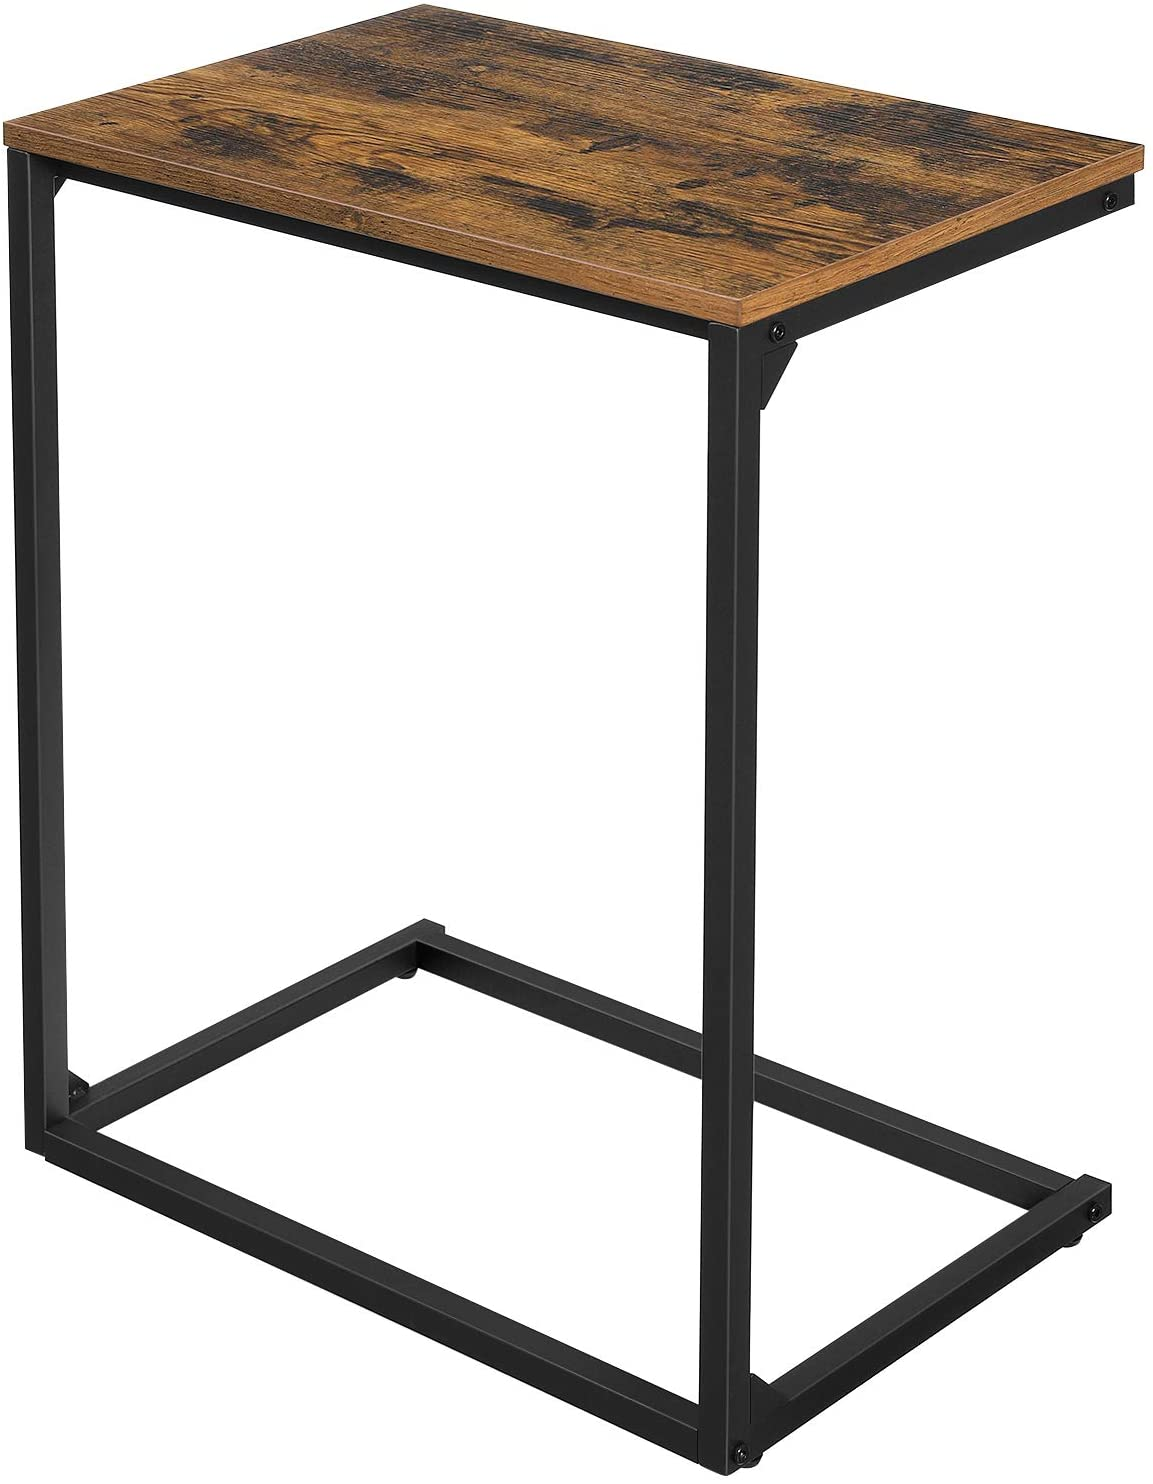 Enjoy fast, free nationwide shipping!  Family owned and operated, HawkinsWoodshop.com is your one stop shop for affordable furniture.  Shop HawkinsWoodshop.com for solid wood & metal modern, traditional, contemporary, industrial, custom, rustic, and farmhouse furniture including our Rustic Brown Simple Structure Side Table.